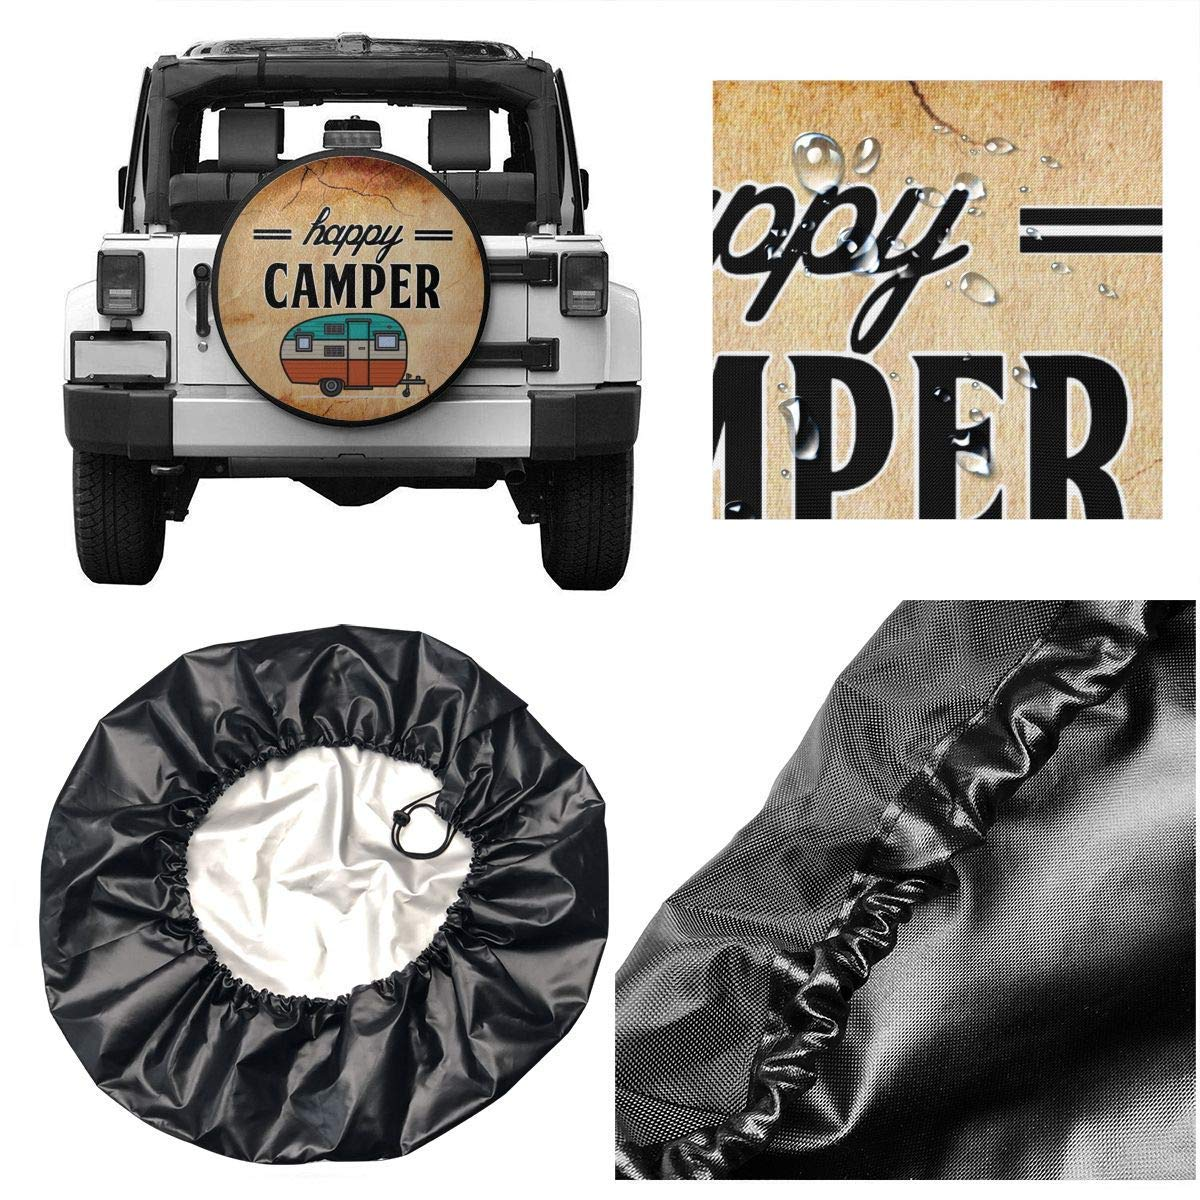 Linzey Tire Cover Happy Camper Camping Potable Polyester Universal Spare Wheel Tire Cover Wheel Covers for Jeep Trailer RV SUV Truck Camper Travel Trailer Accessories 14,15,16,17 Inch